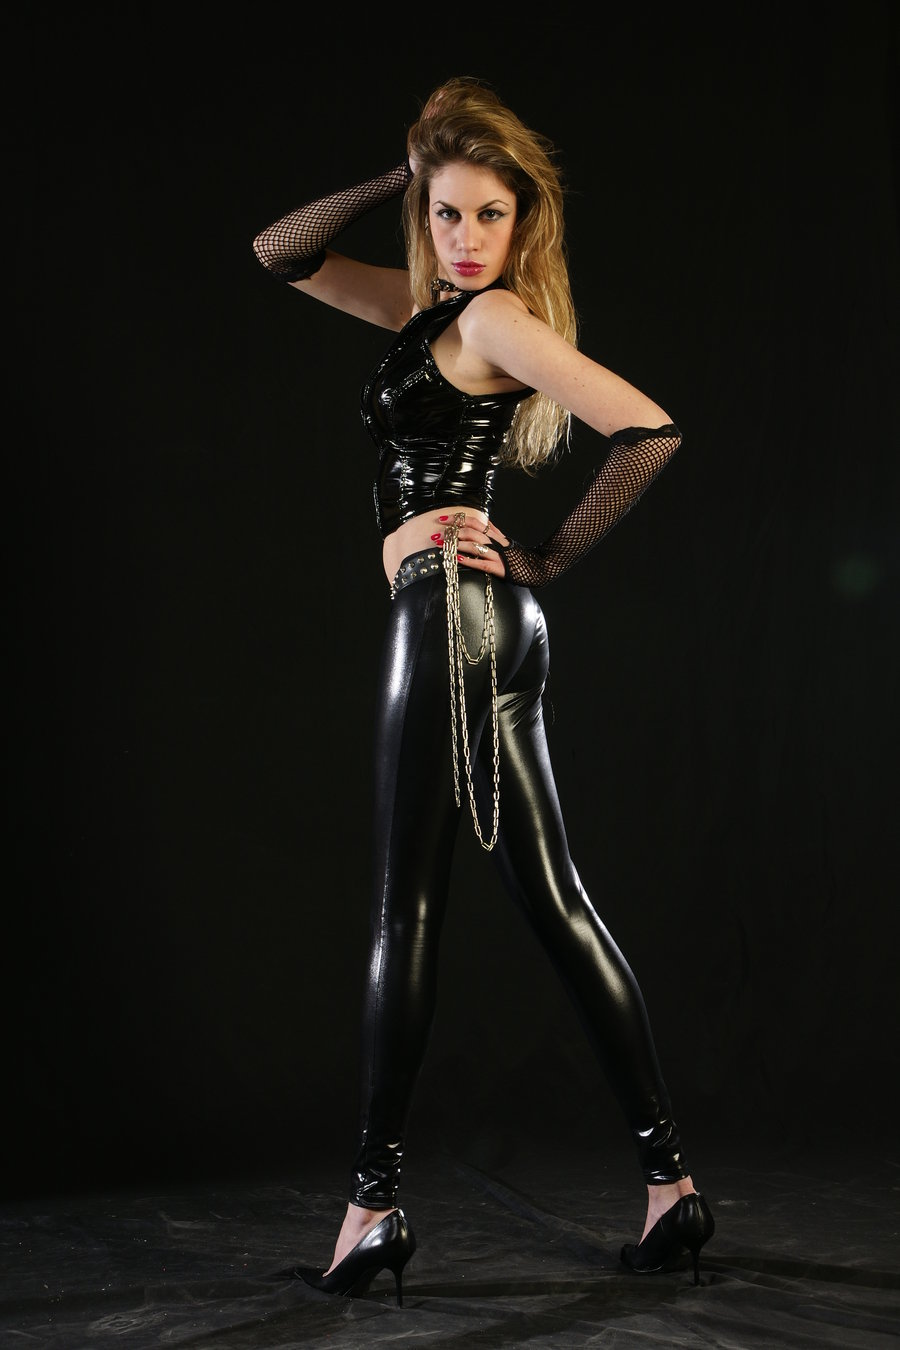 Female in latex